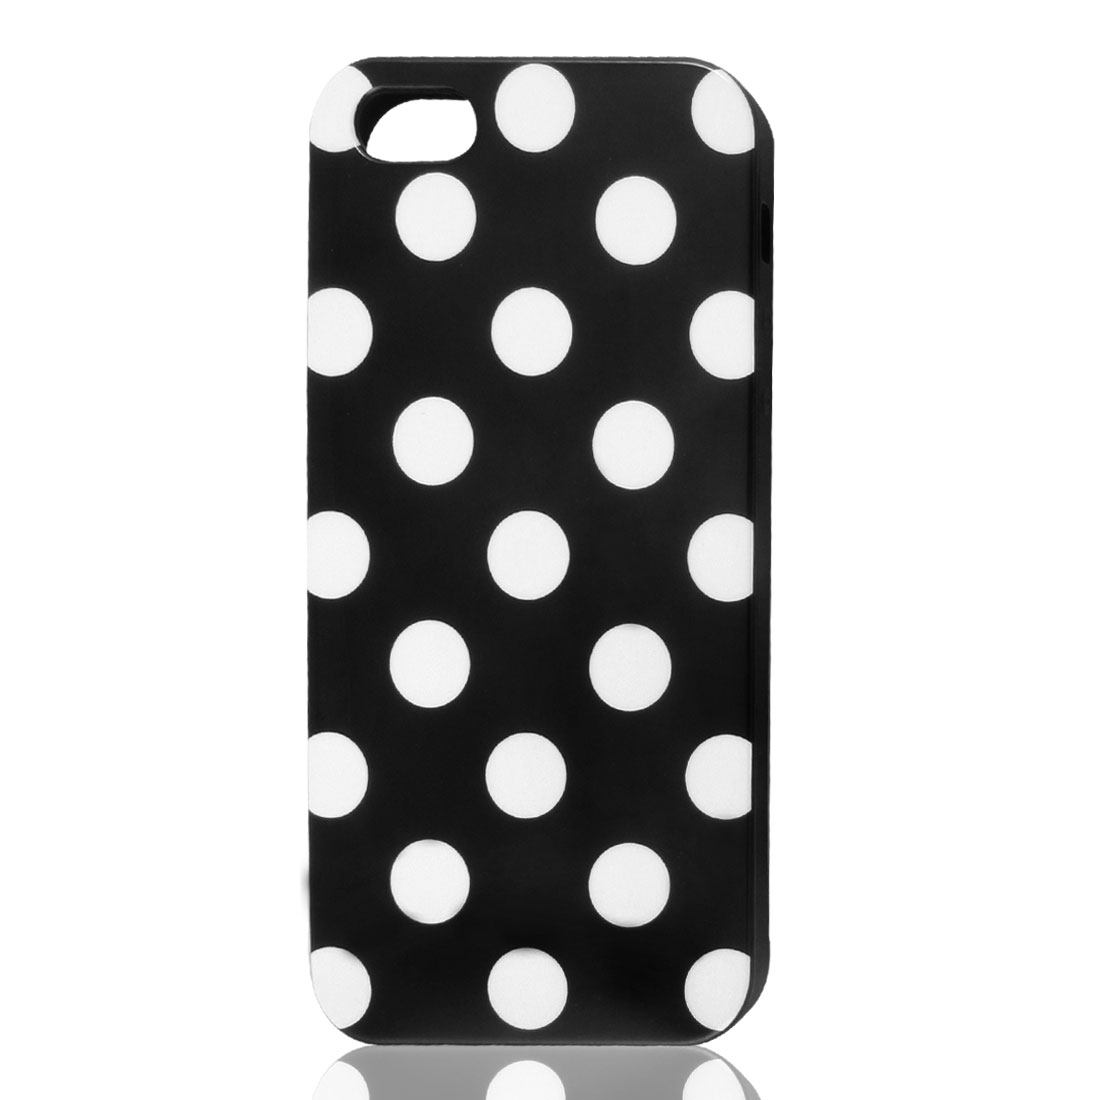 White Polka Dot Black Plastic TPU Phone Case Cover for Apple iPhone 5 5G